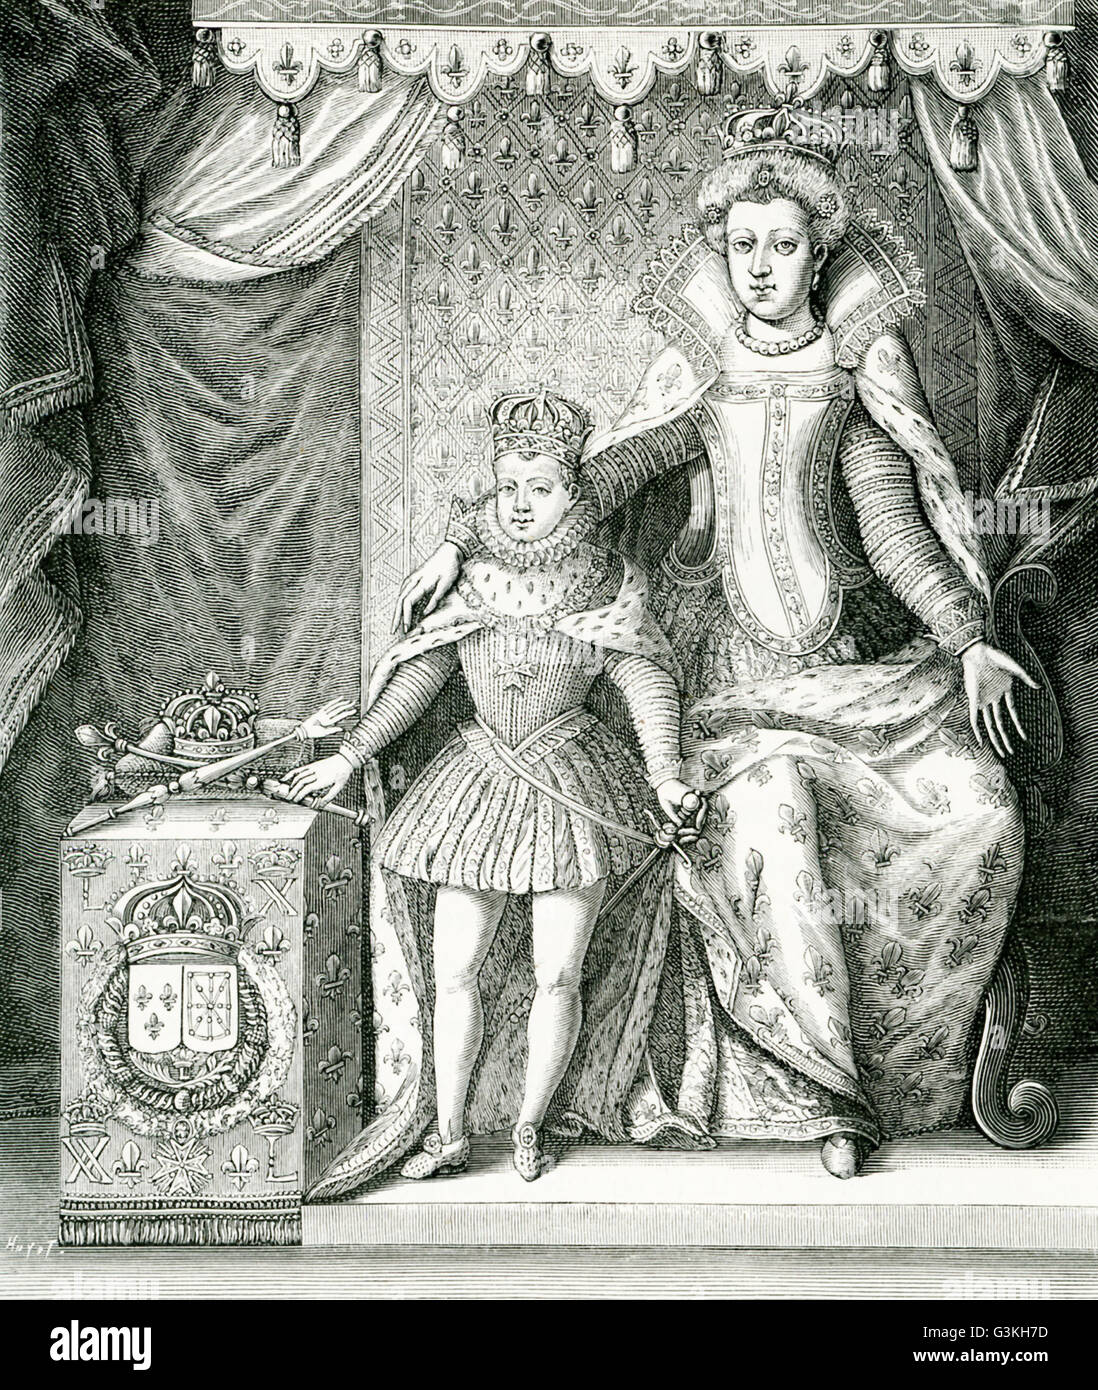 The caption for this engraving reads: Marie de Medicis, the regent and her son, Louis XIII of France. The image - Stock Image